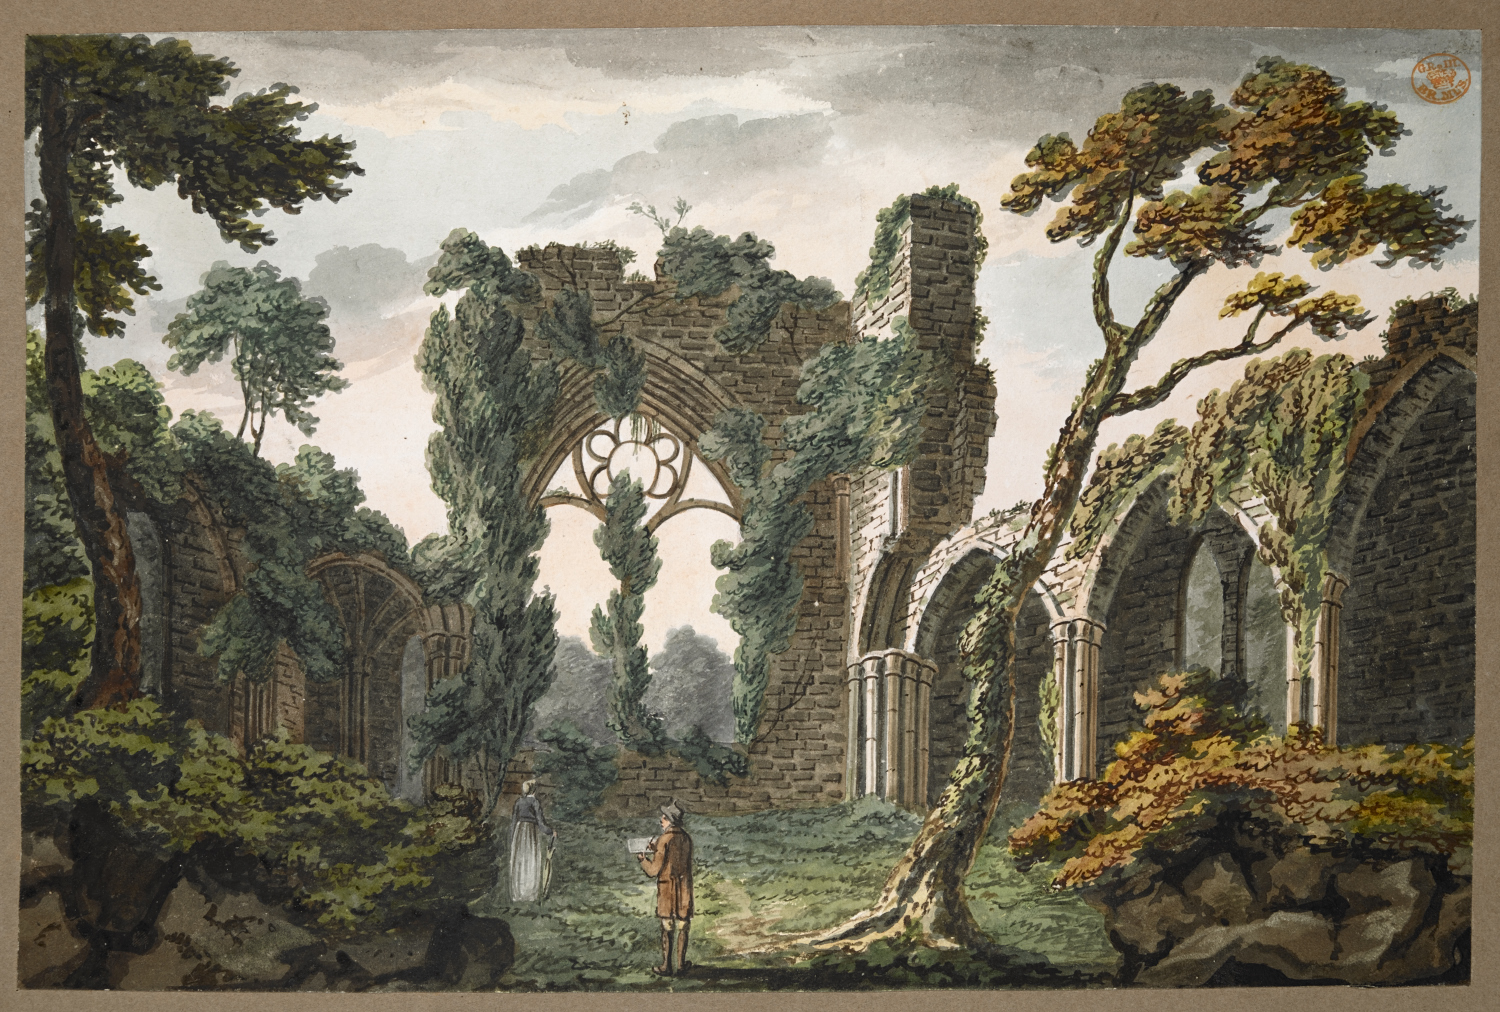 Maps K.Top.14.83.e.: Anonymous, Interior view of the east end of Netley Abbey near Southampton (about 1790-1810) available on Picturing Places from the British Library